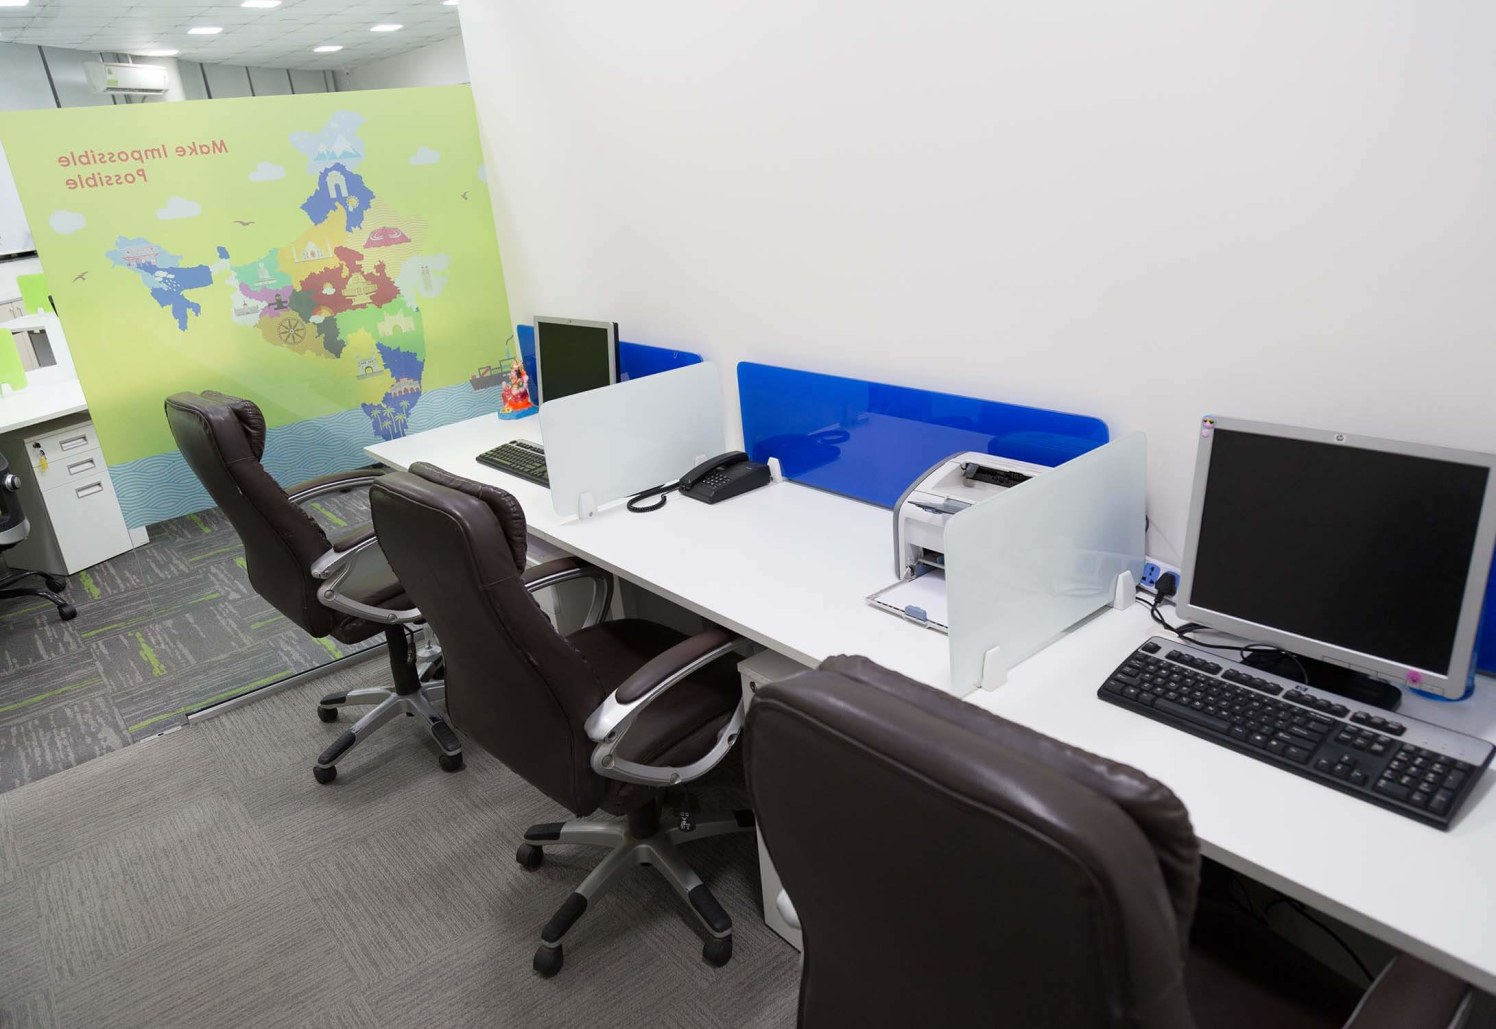 Basic Office Space with White Desk and Brown Chairs by Trupti Ladda Contemporary | Interior Design Photos & Ideas